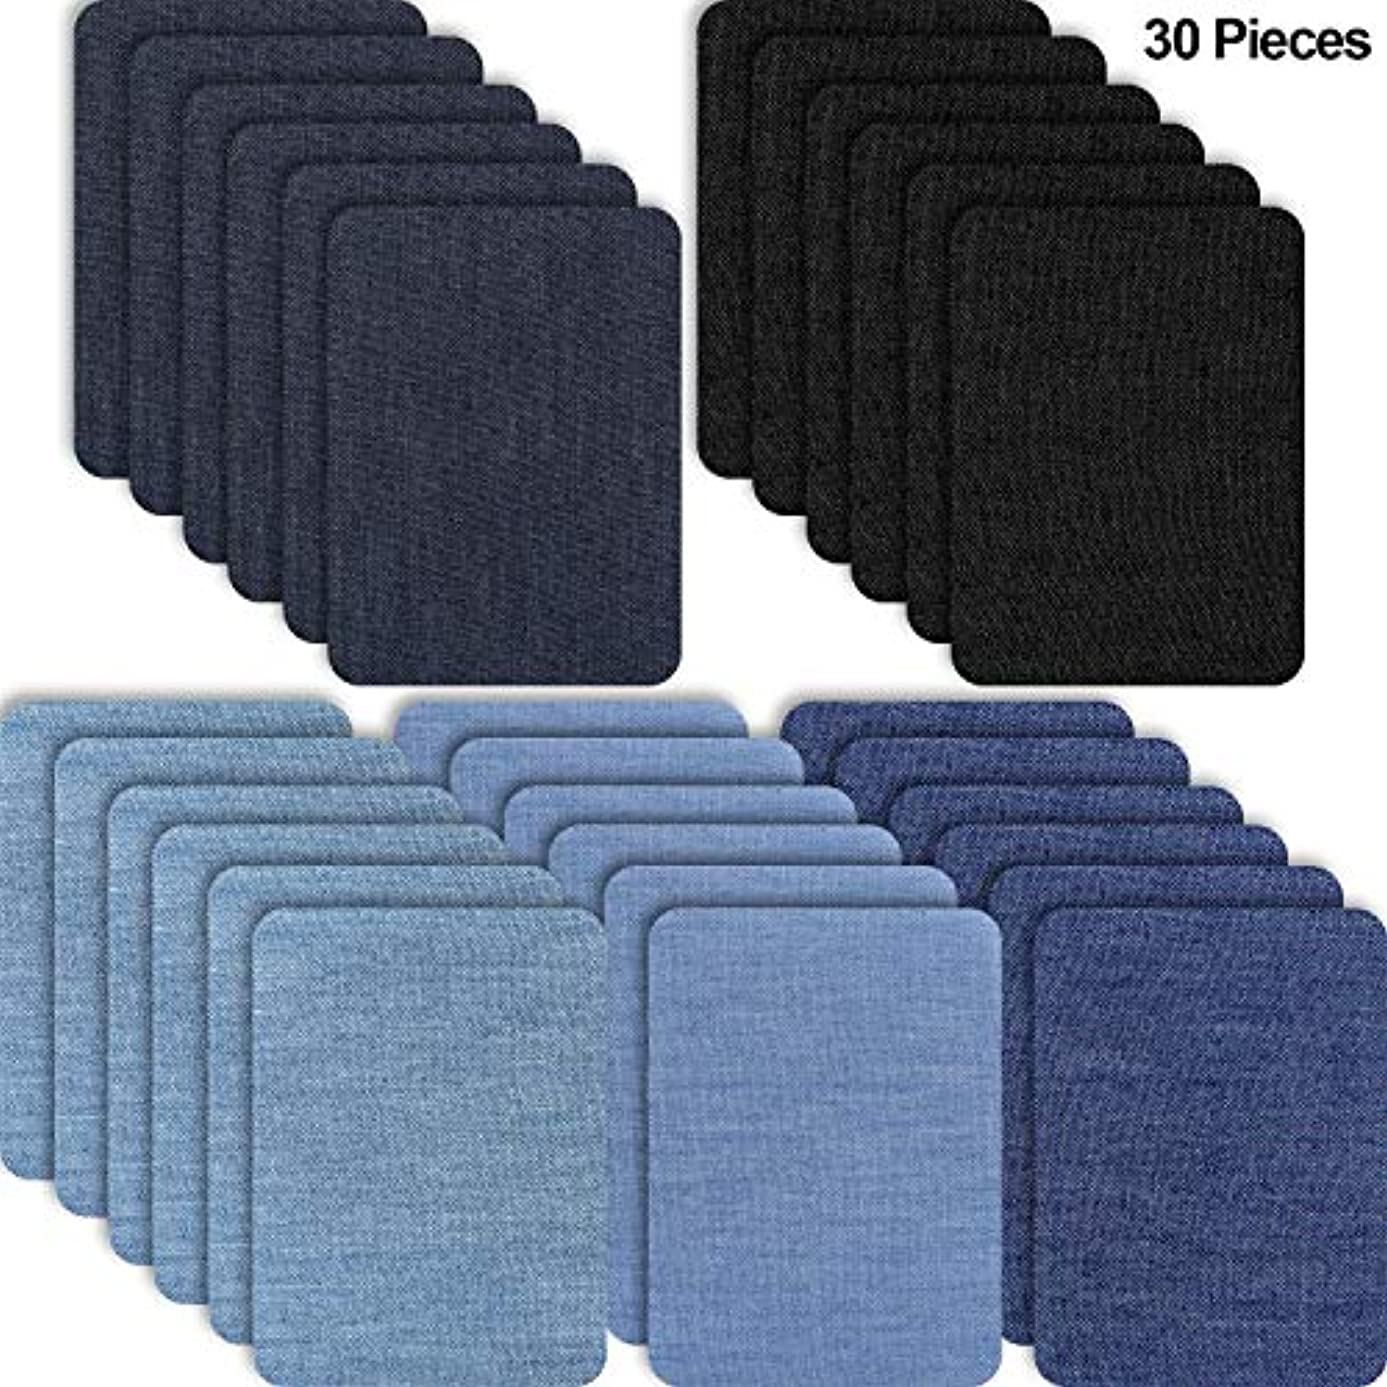 30 Pieces Iron on Fabric Patches Denim Jean Repair Patches Clothing Repair Patch Kit for Jacket Jean Clothes (Color Set 2)